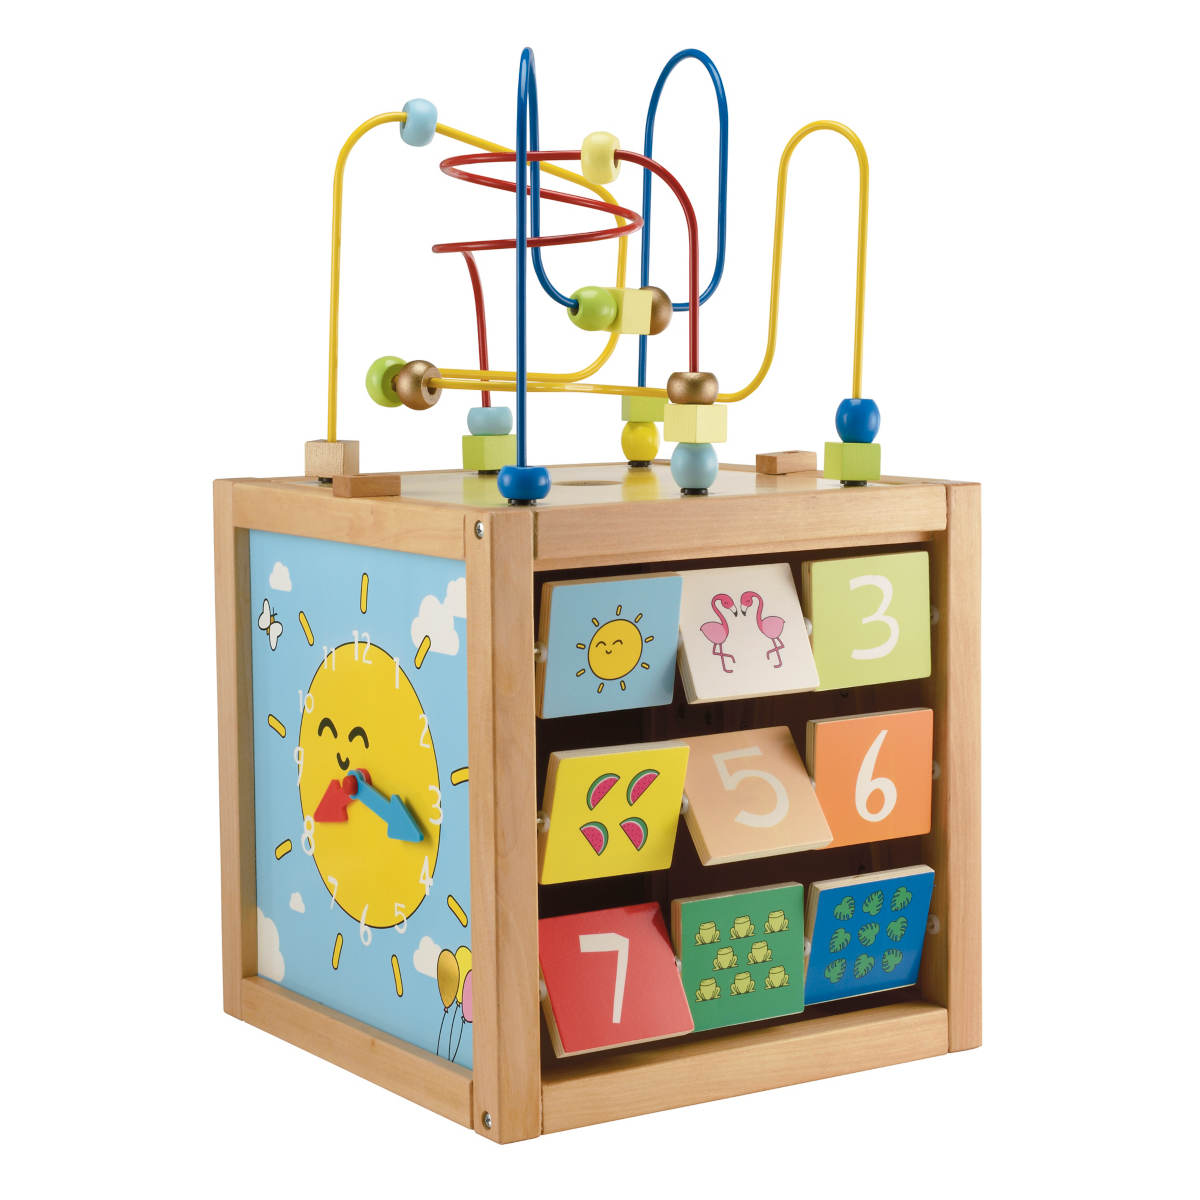 Early Learning Centre Giant Wooden Activity Cube - Blue from Early Learning Center